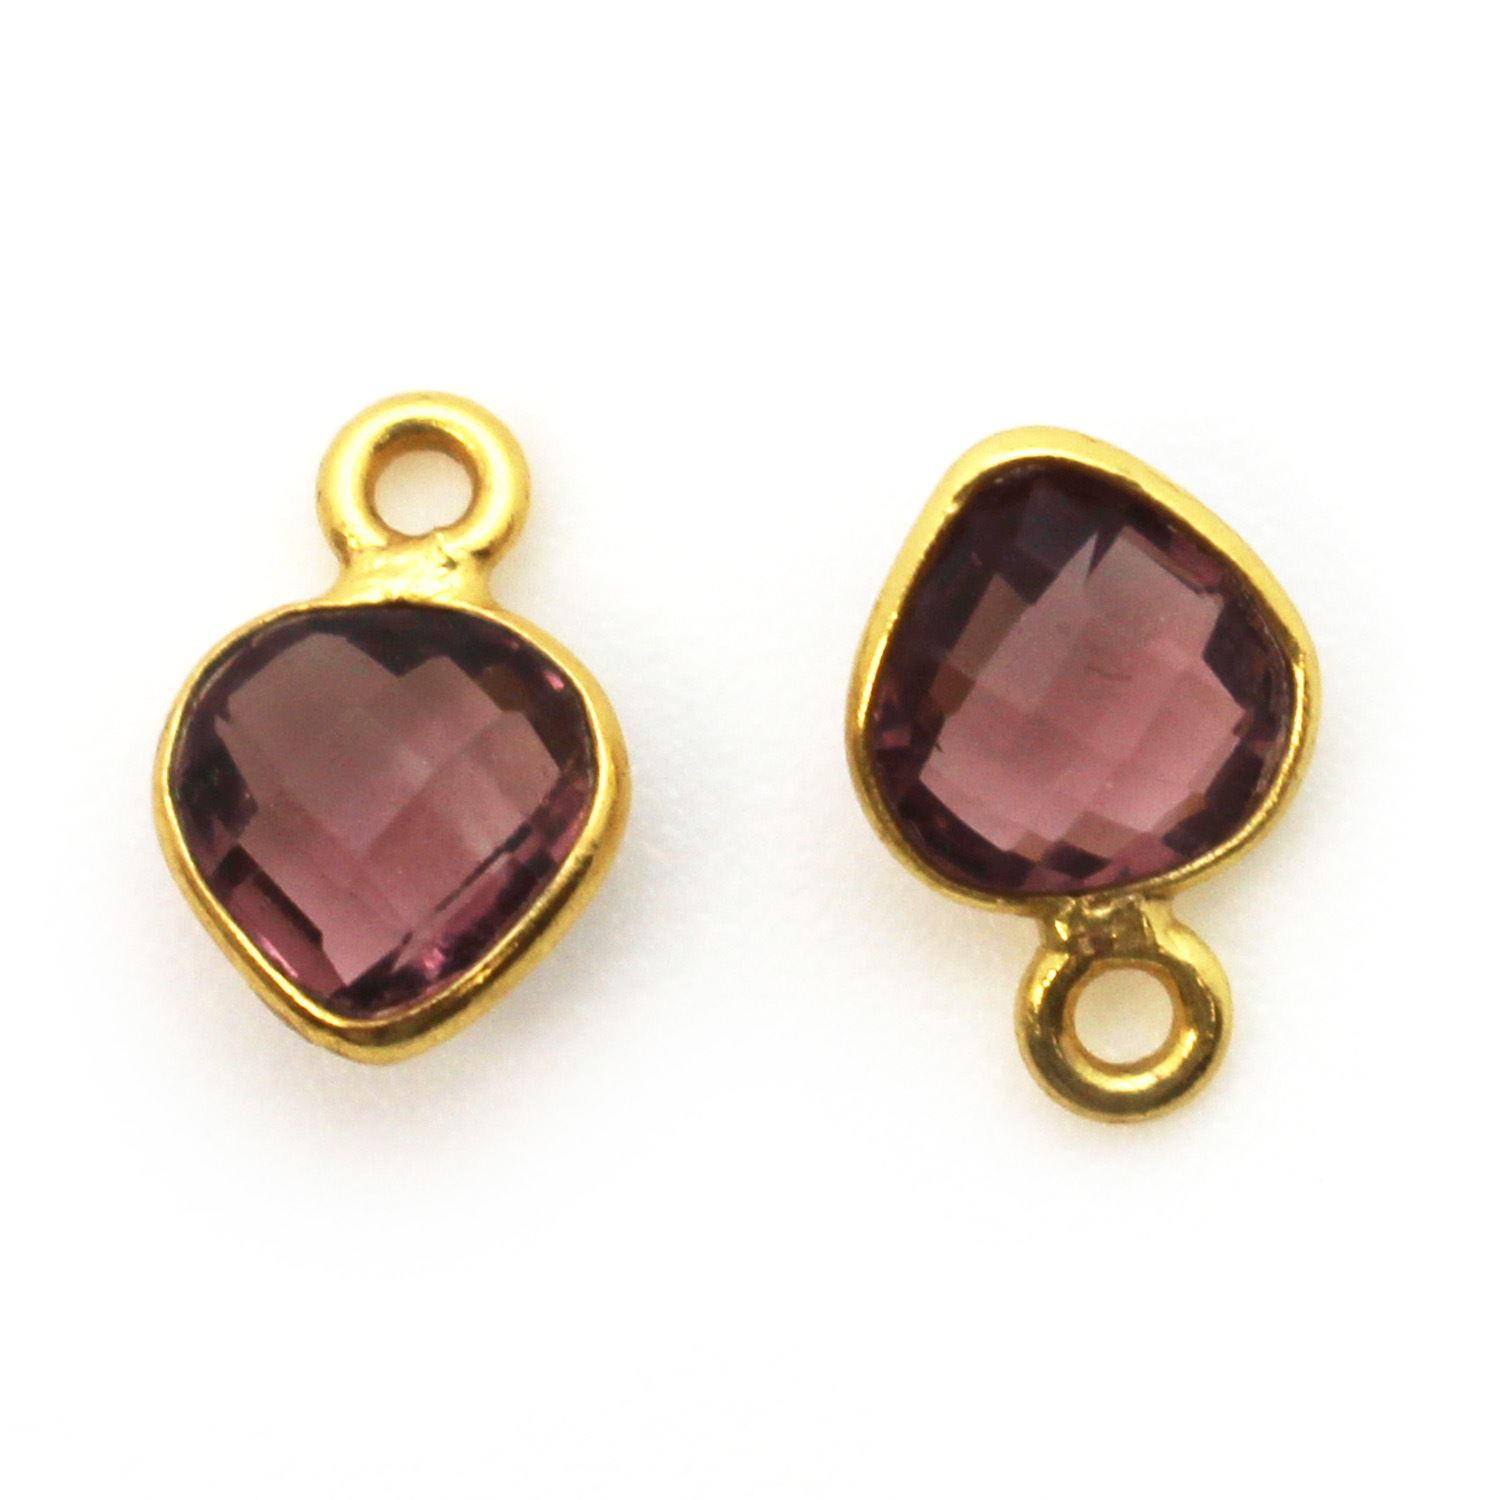 Bezel Gem Pendant-Gold Plated Sterling Silver- 10x7mm Tiny Heart Shape- Pink Amethyst Quartz (sold per 2 pieces)